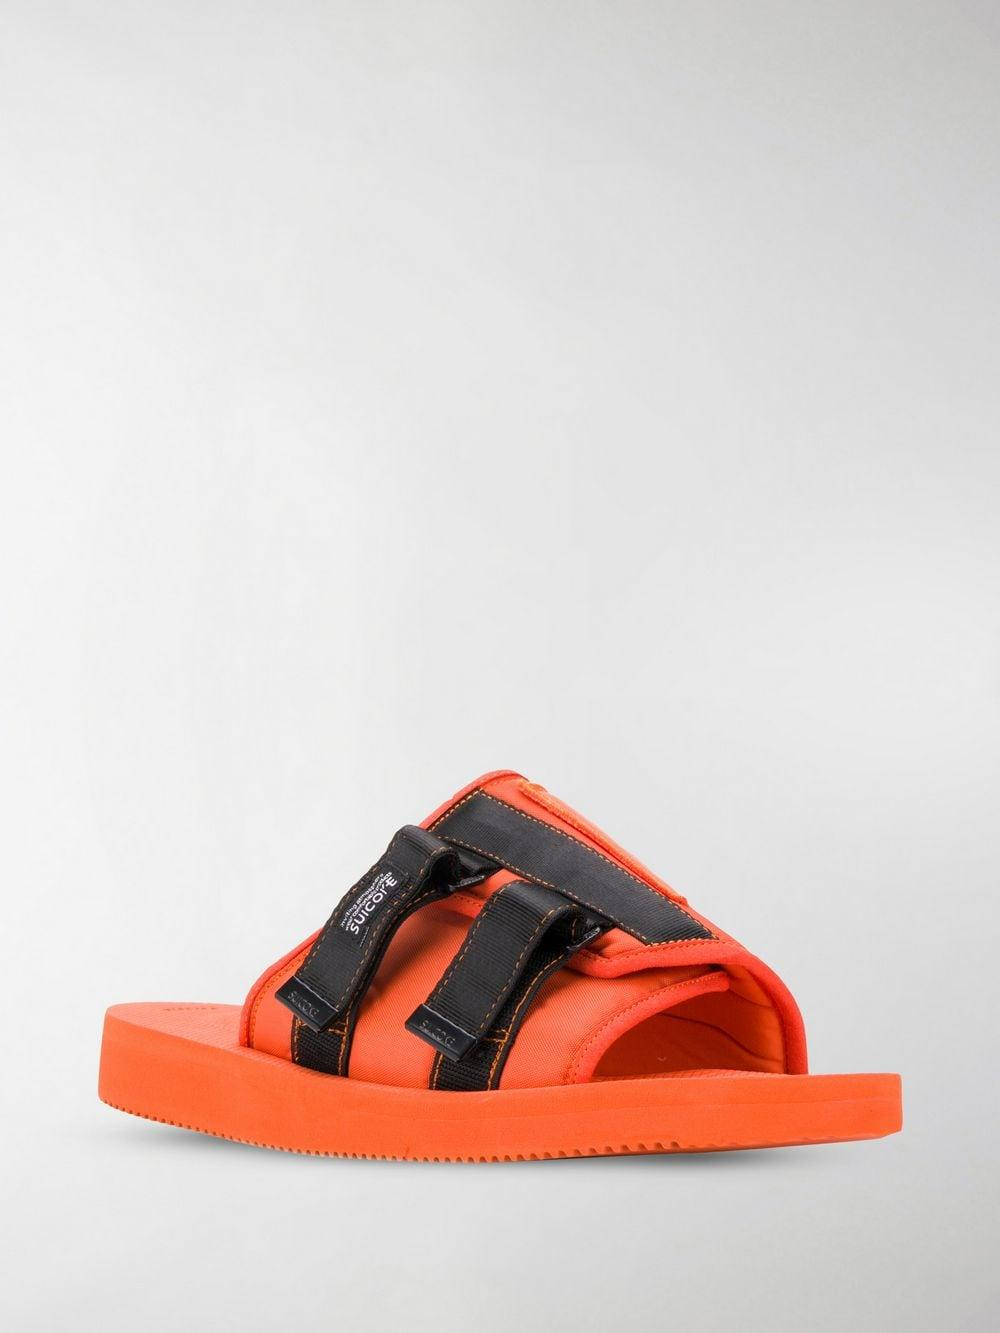 7651e95572db Lyst - Palm Angels X Suicoke Patch Slider in Orange for Men - Save 30%